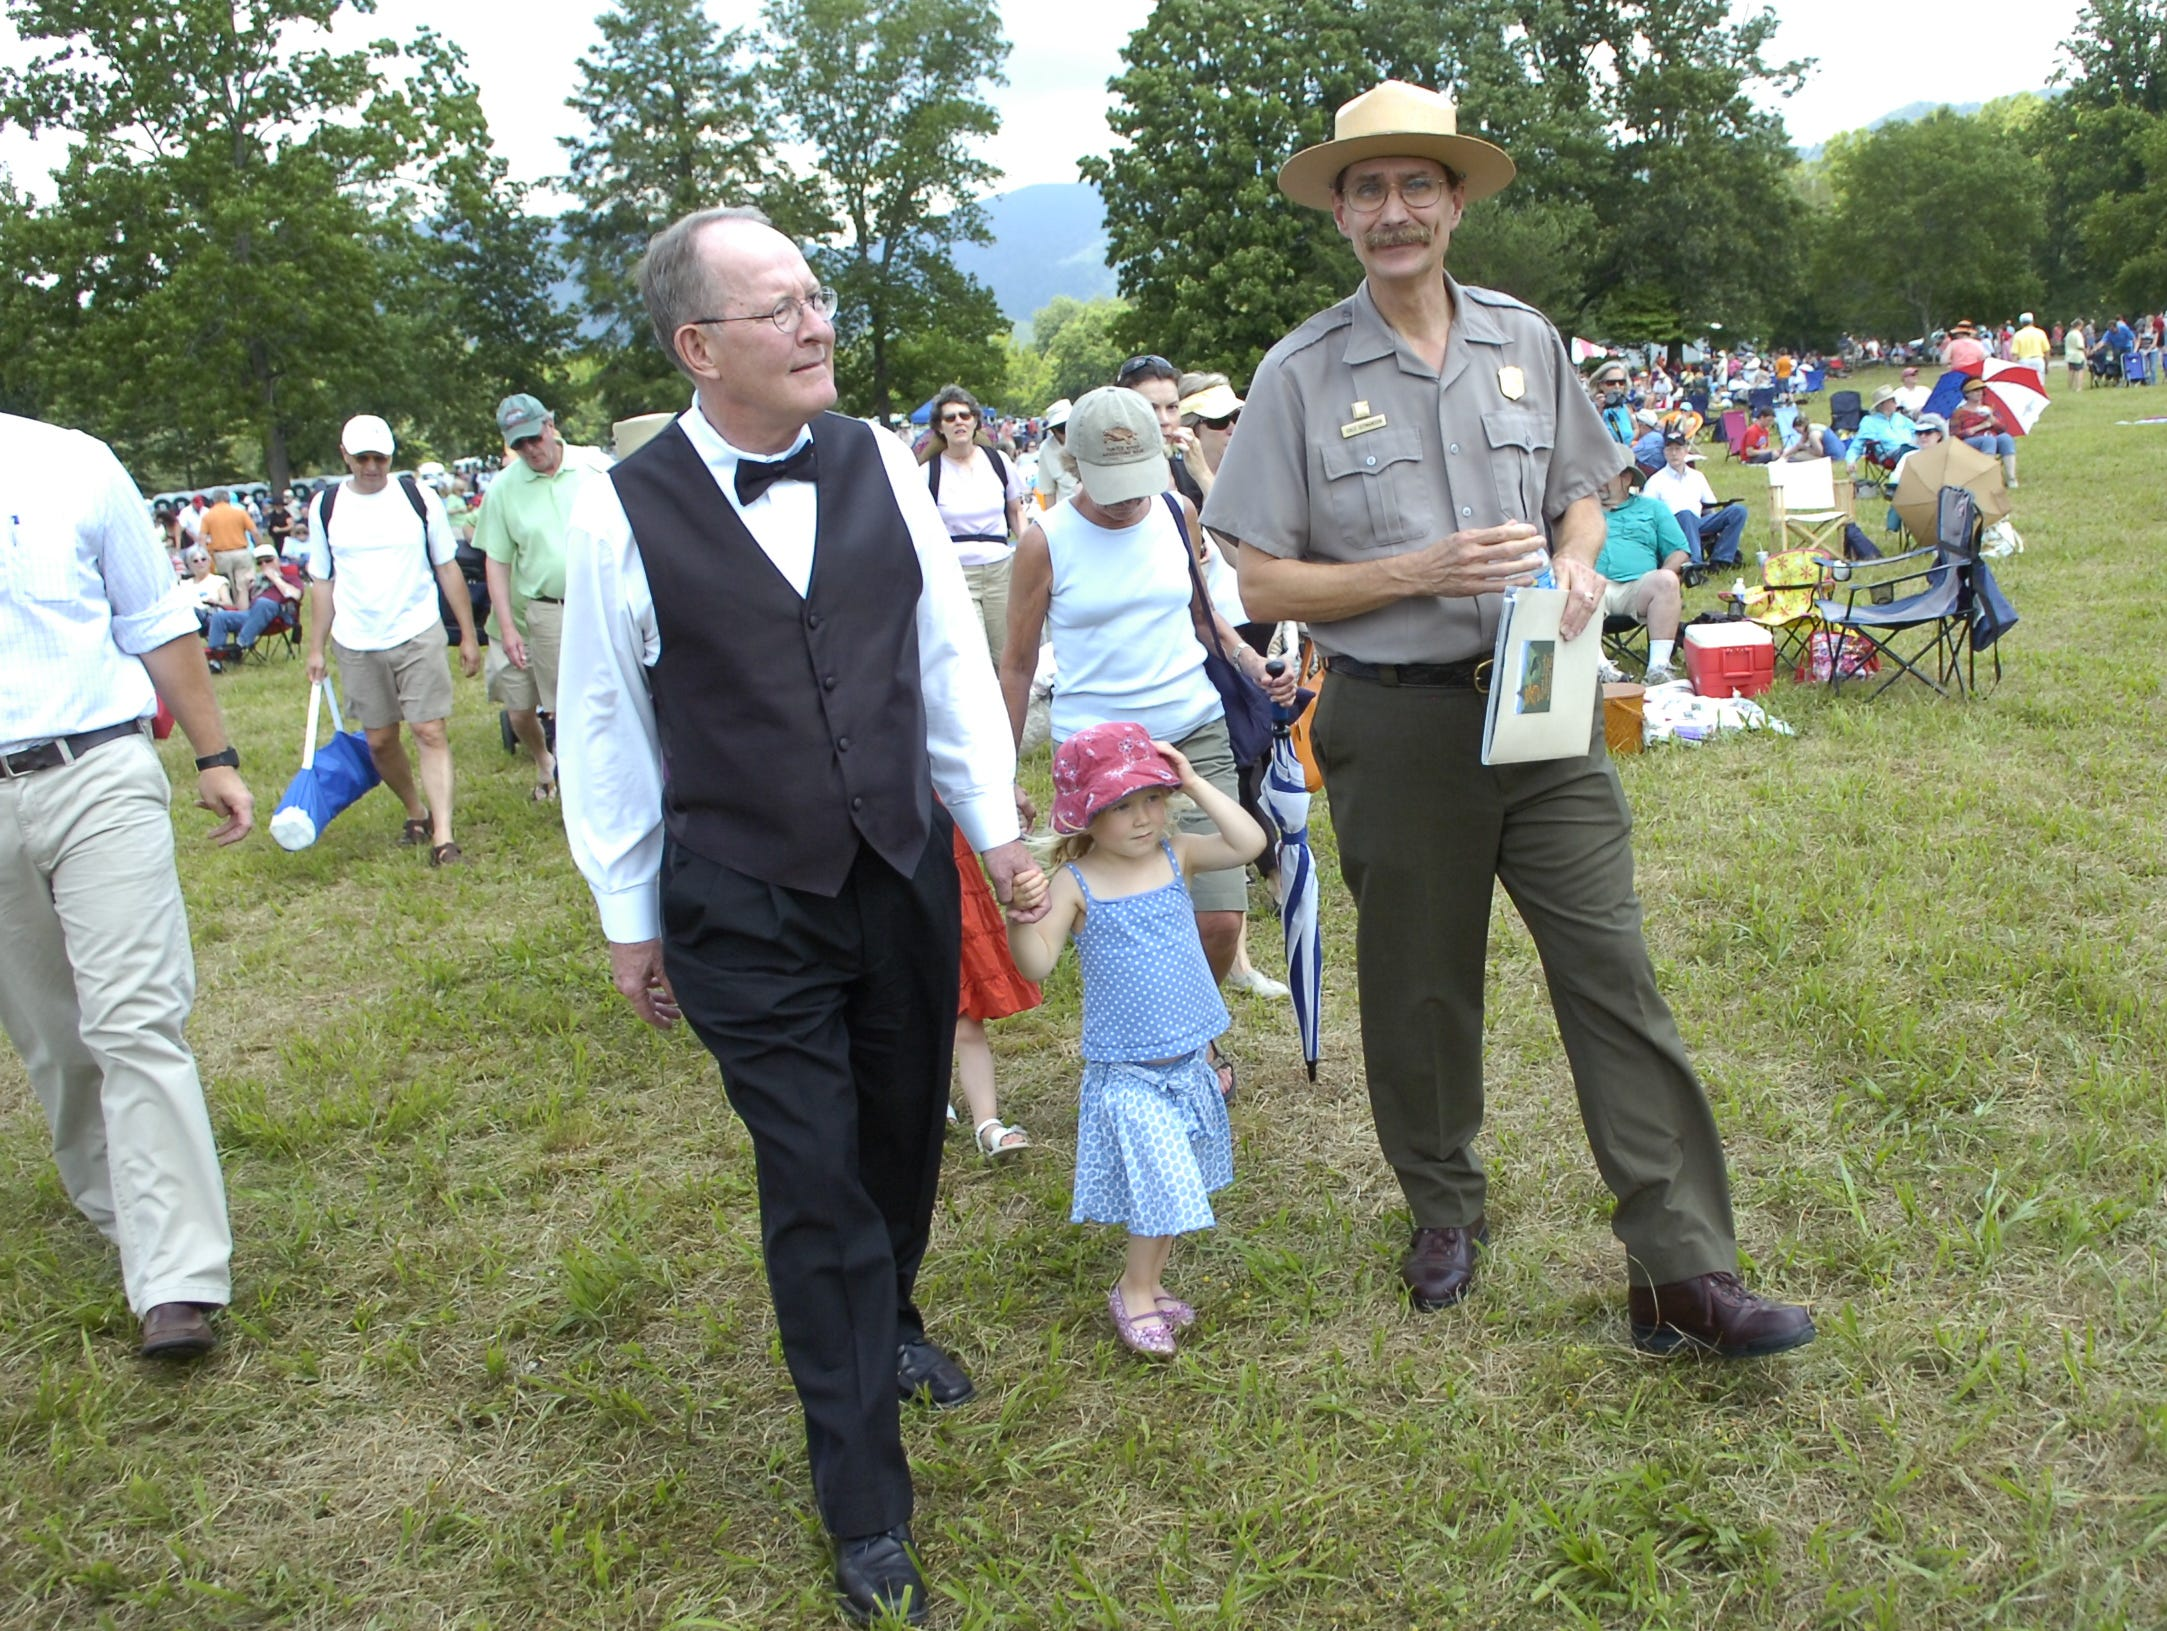 Senator Lamar Alexander walks toward the concert stage with his granddaughter, three year-old Taylor Irwin, and Great Smoky Mountain National Park Superintendent Dale Ditmanson during the 75th Anniversary Celebration Concert in Cades Cove featuring the Knoxville Symphony Orchestra and Senator Alexander. The event drew and estimated 5,000 concertgoers to the cove on Saturday afternoon.